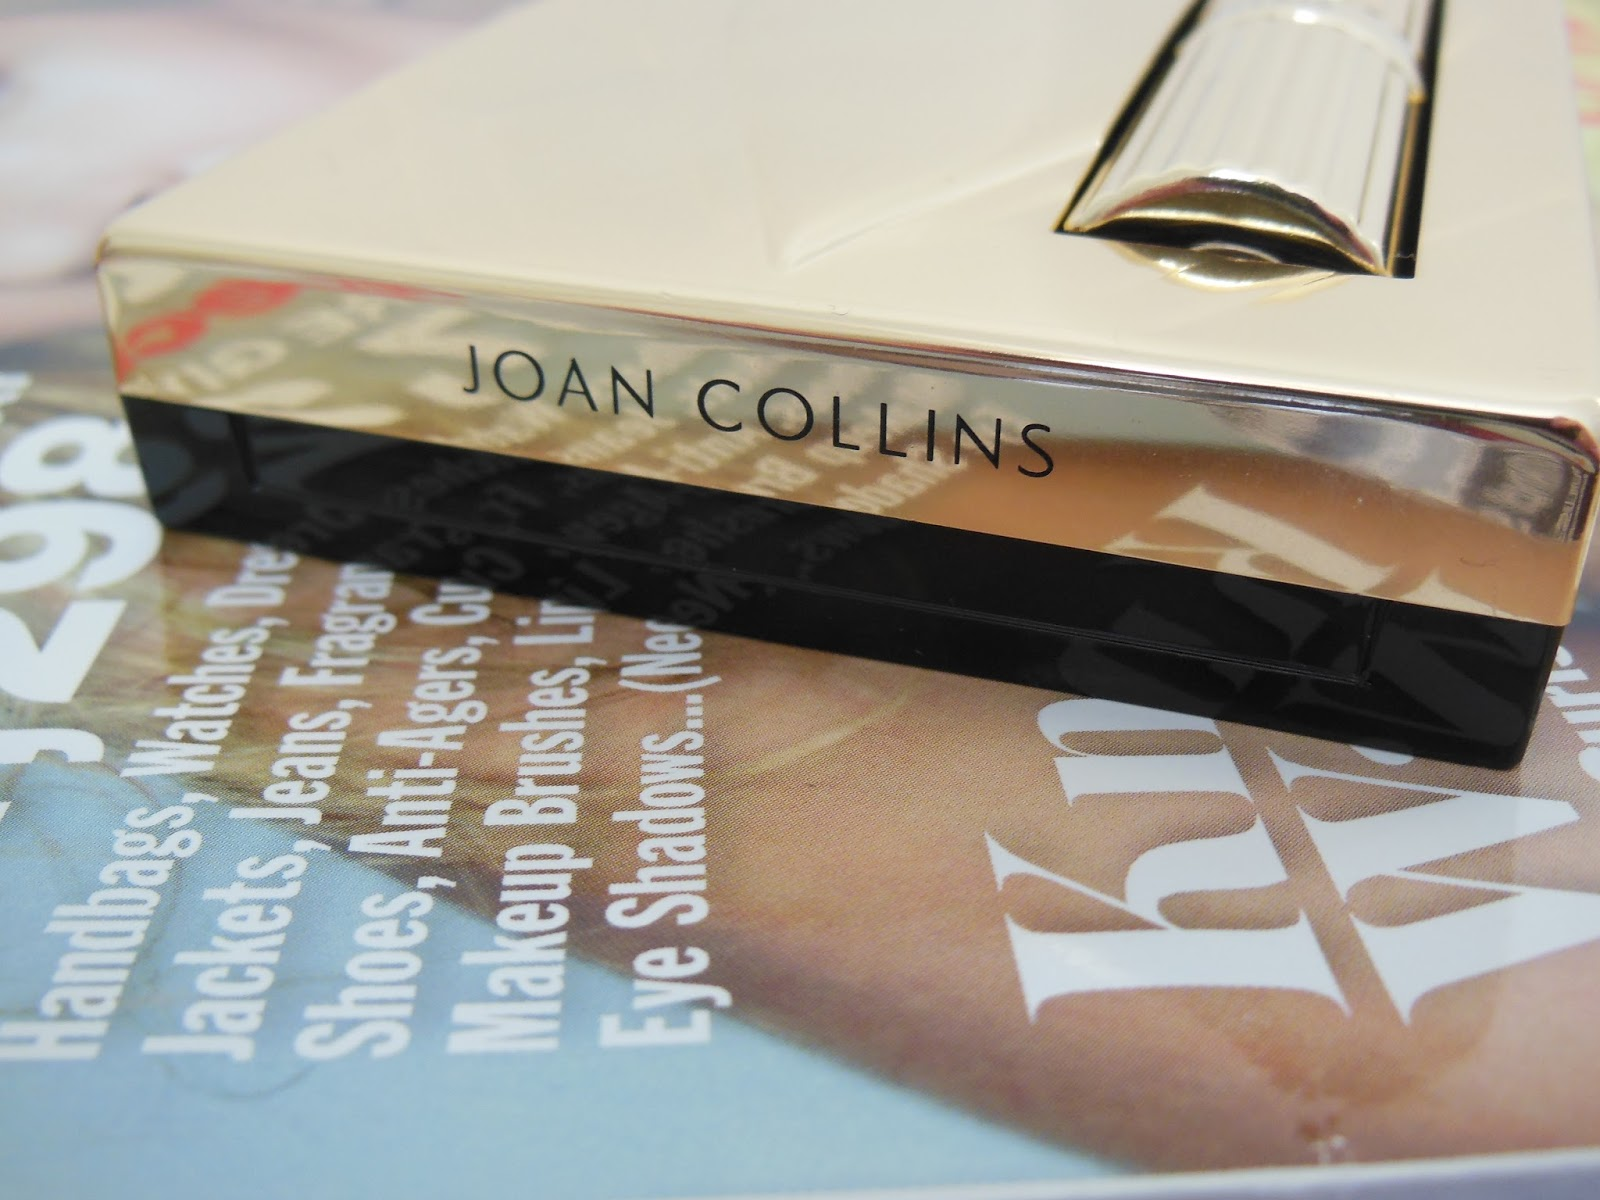 Joan Collins timeless beauty makeup